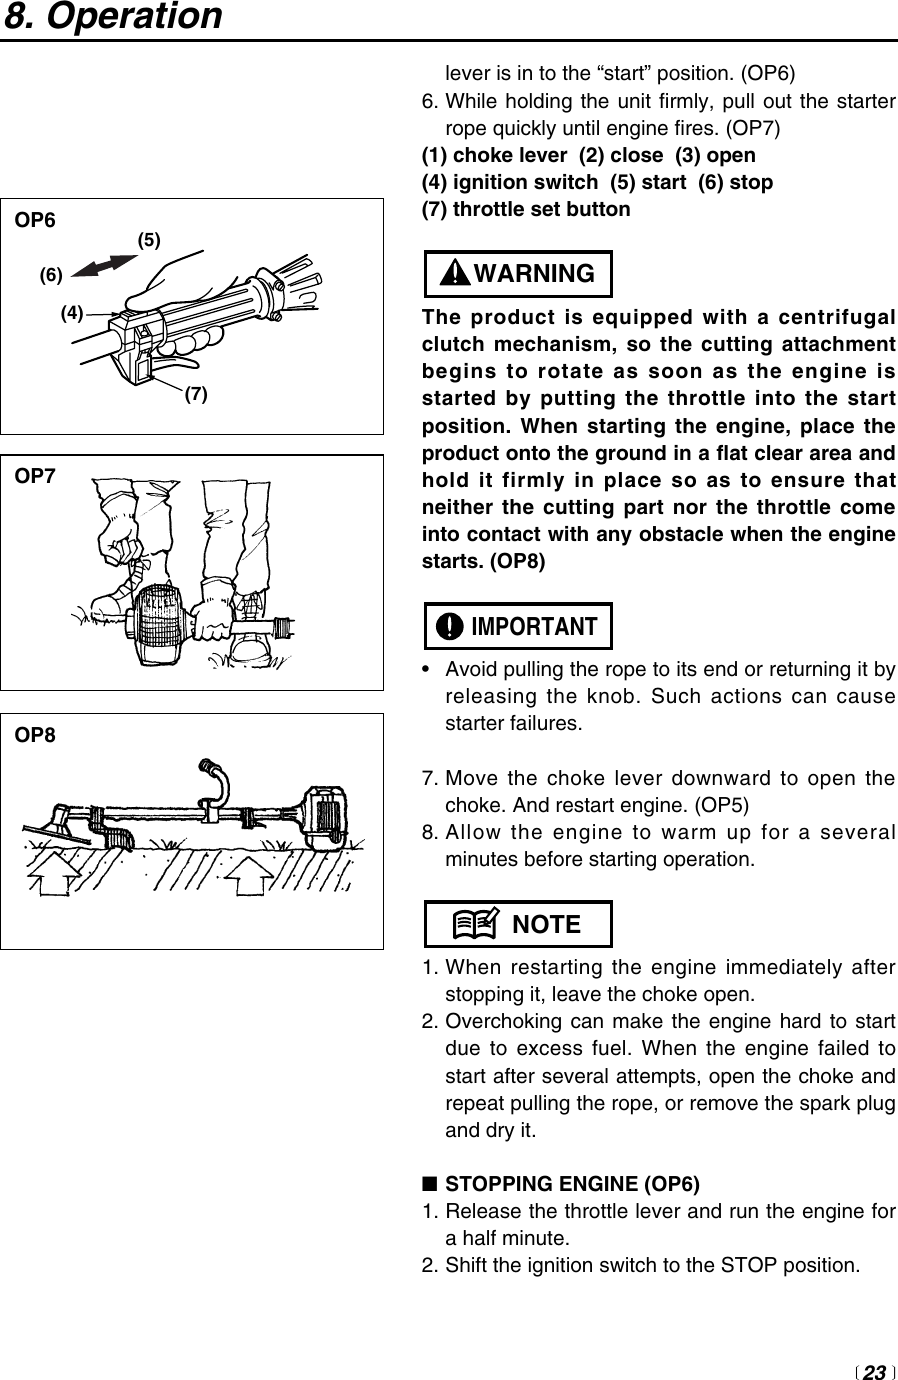 Redmax Extreme Exz2500S Bc Users Manual OM,REDMAX,EXTREME,2003 03,1,0303